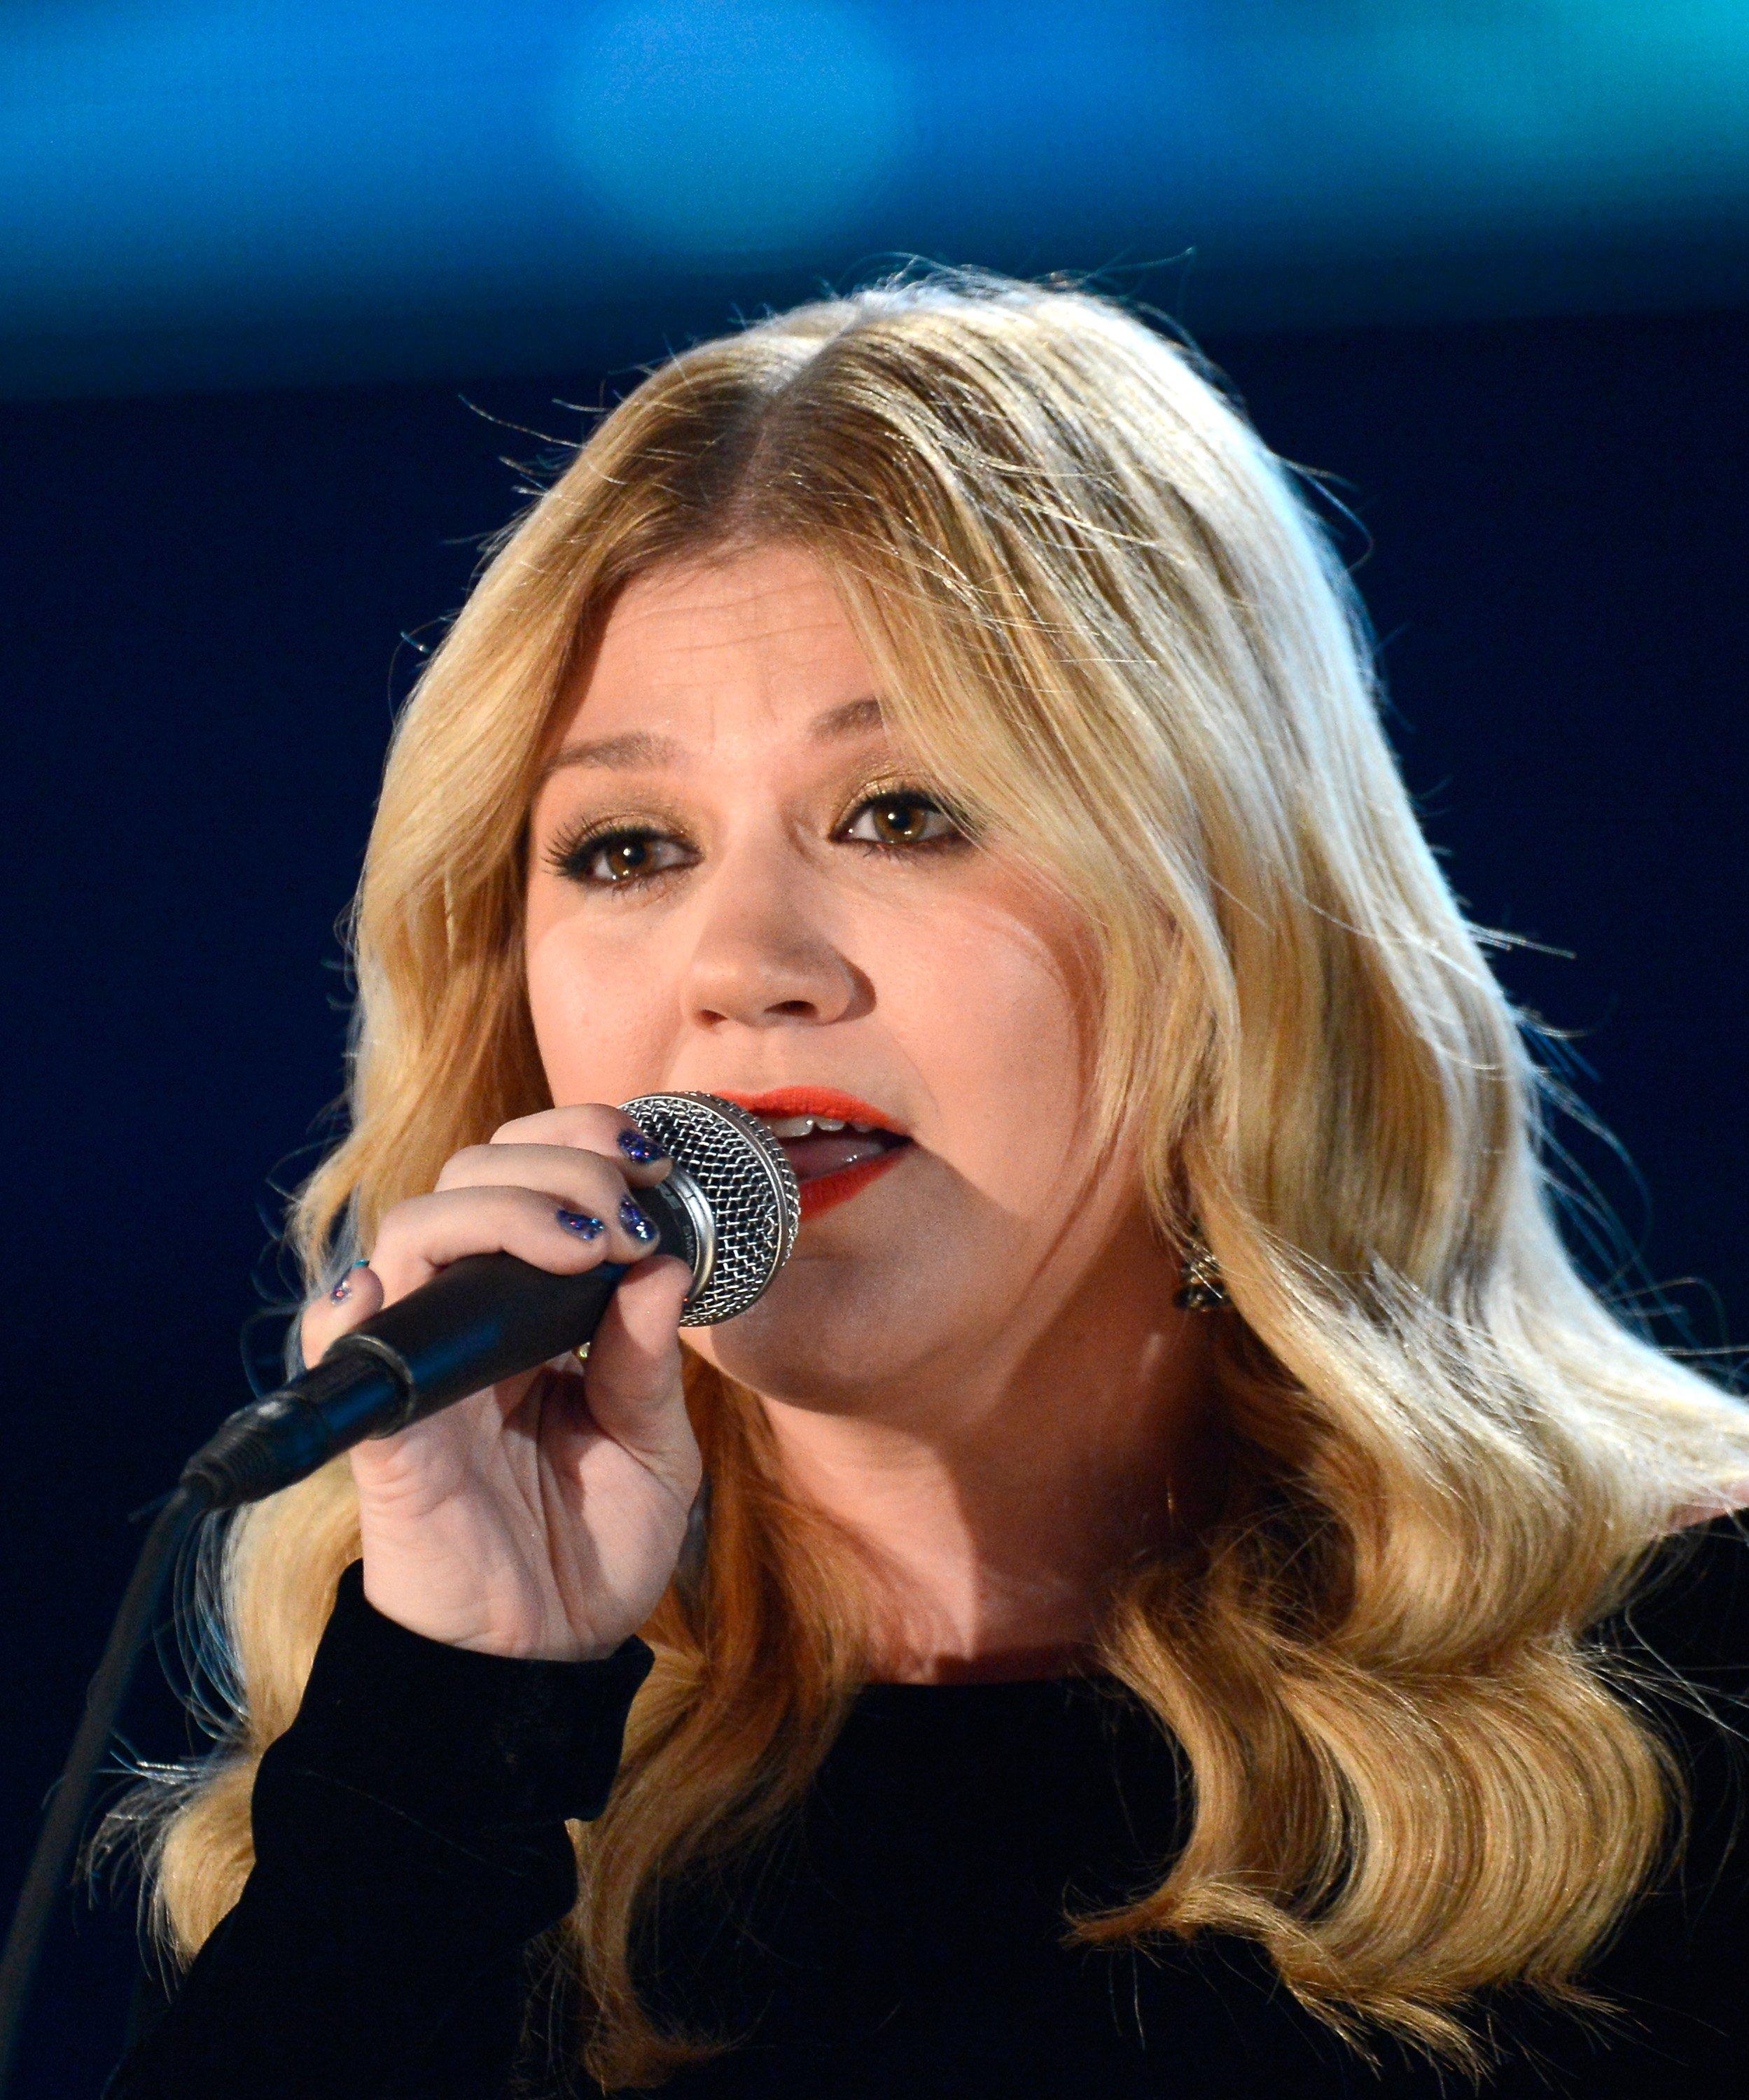 Image Source: Getty Images | Kelly singing at an event